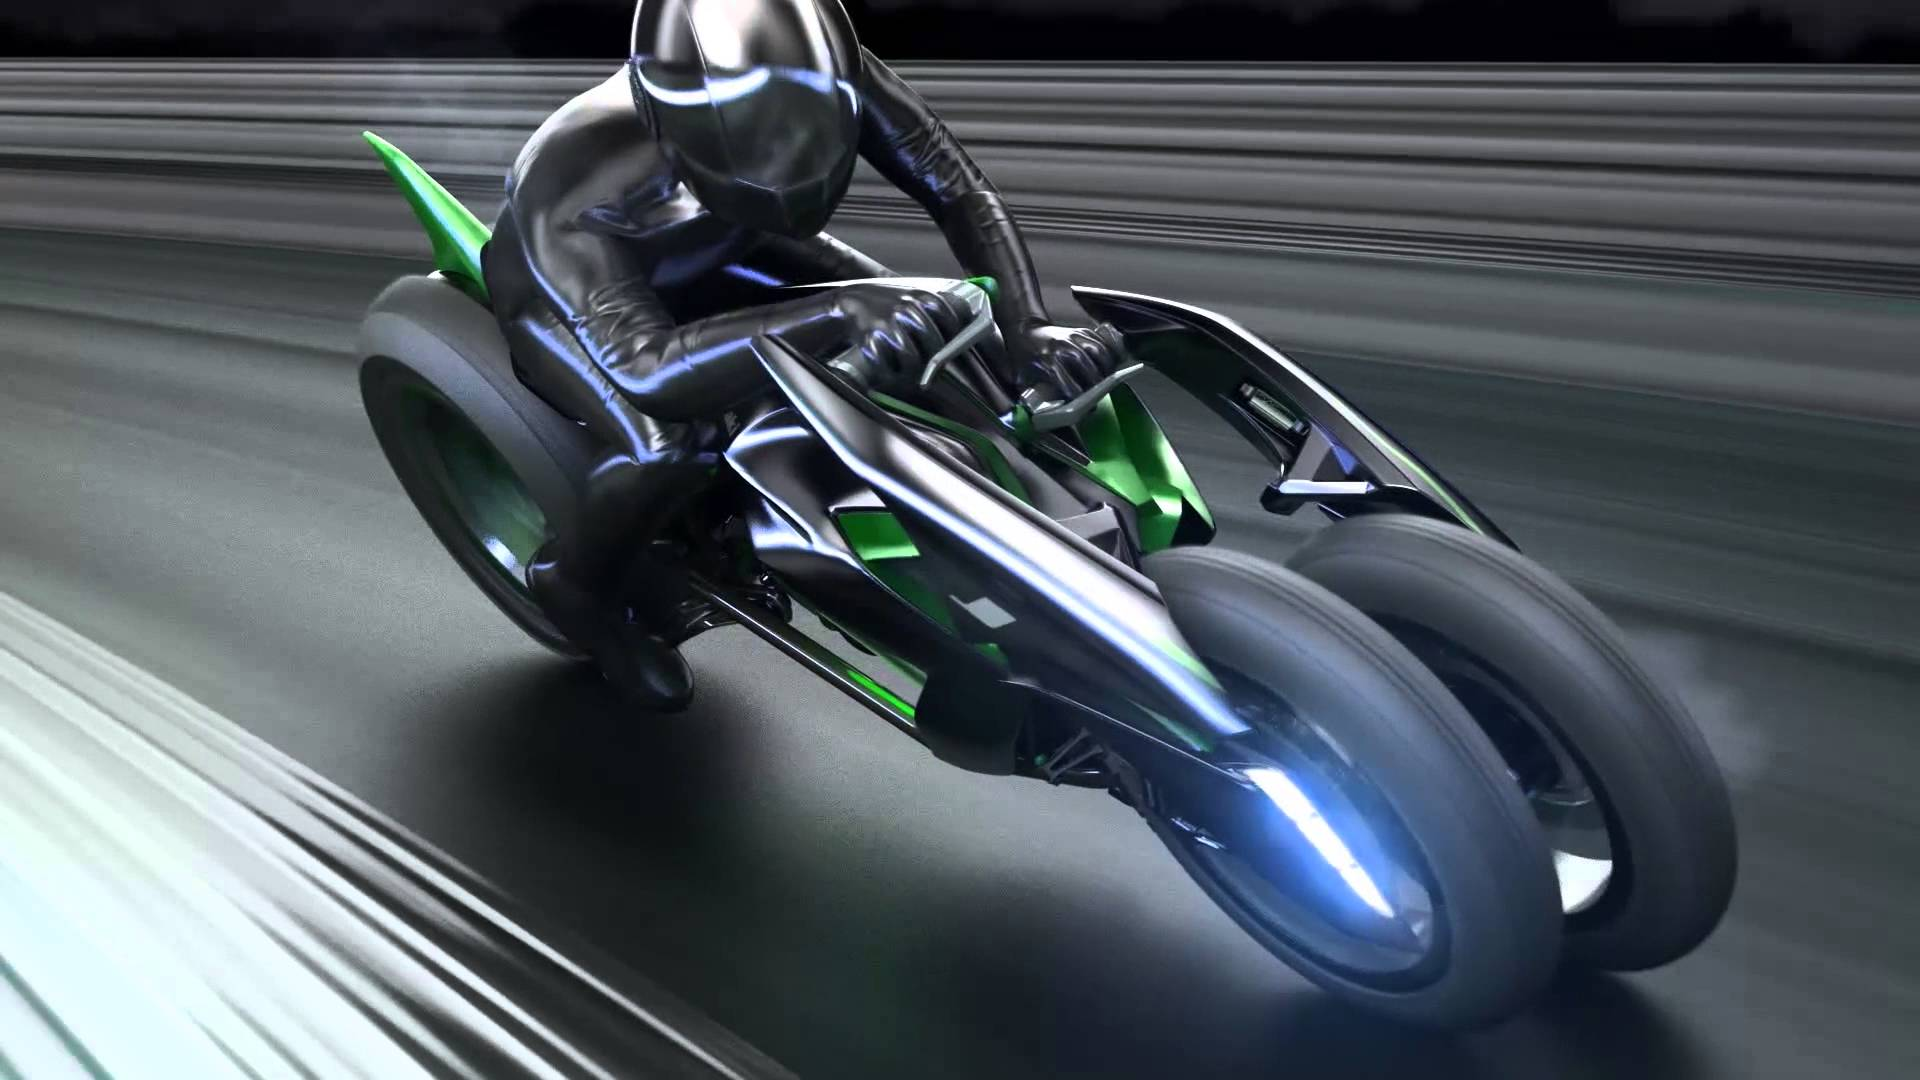 When TRON Light Cycle Meets 3-Wheeled Electric Motorcycle, You Get the Kawasaki J